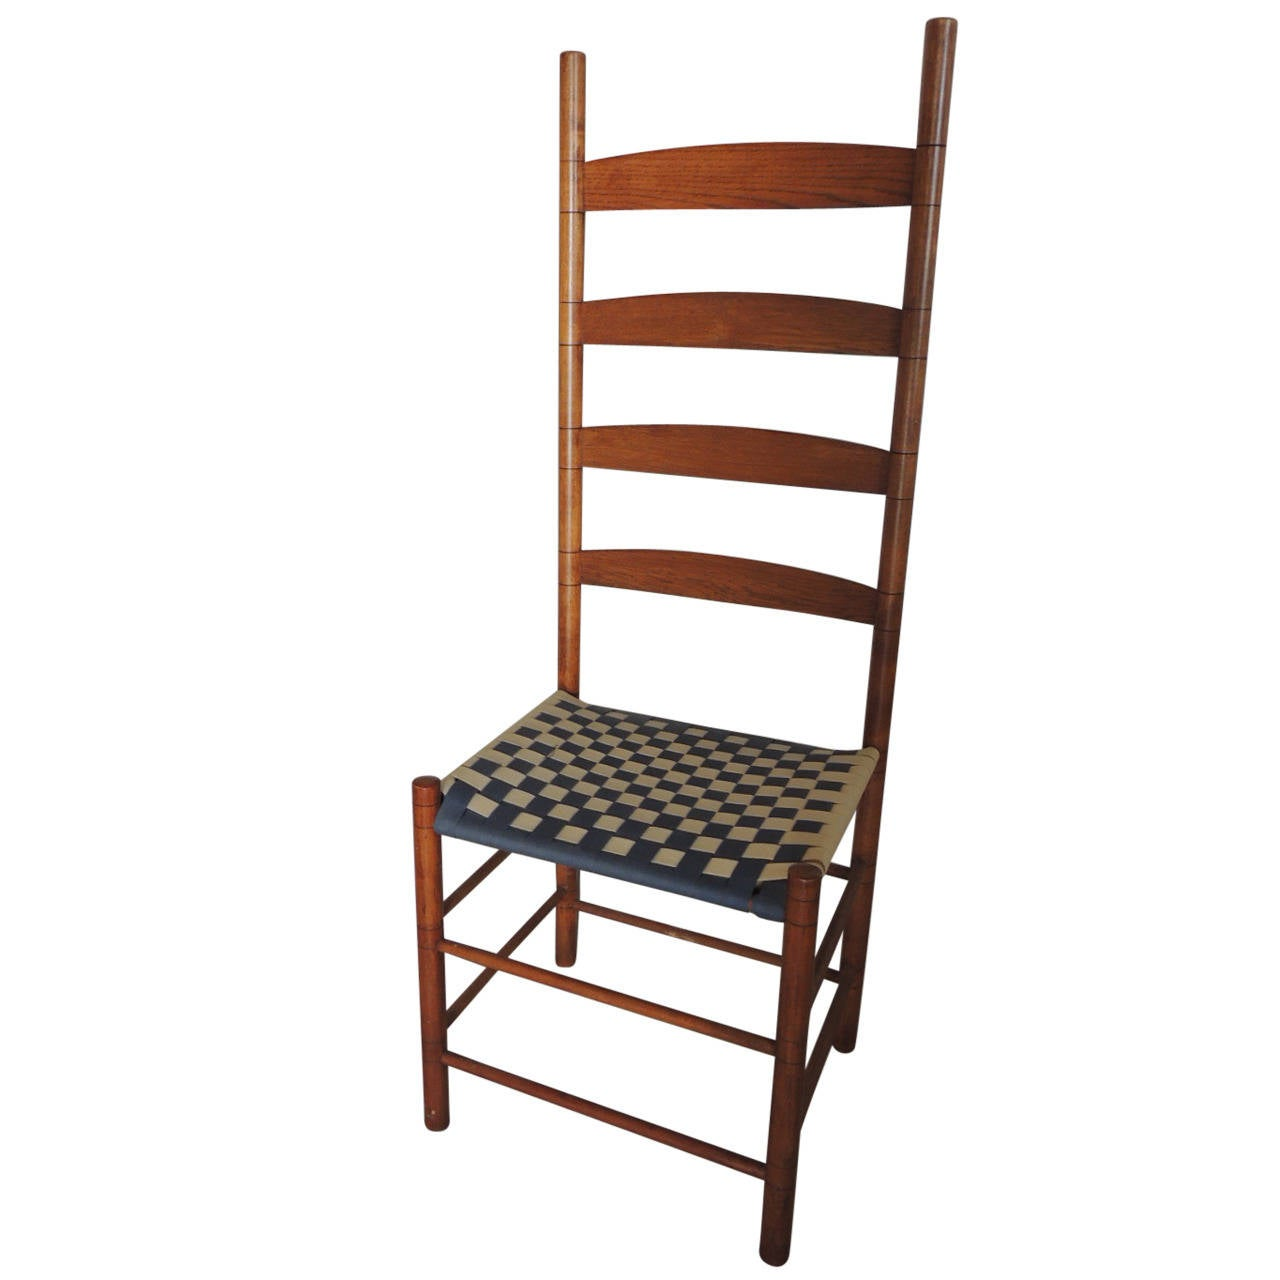 Hudson valley shaker ladder back side chair at 1stdibs - Ladder back dining room chairs ...